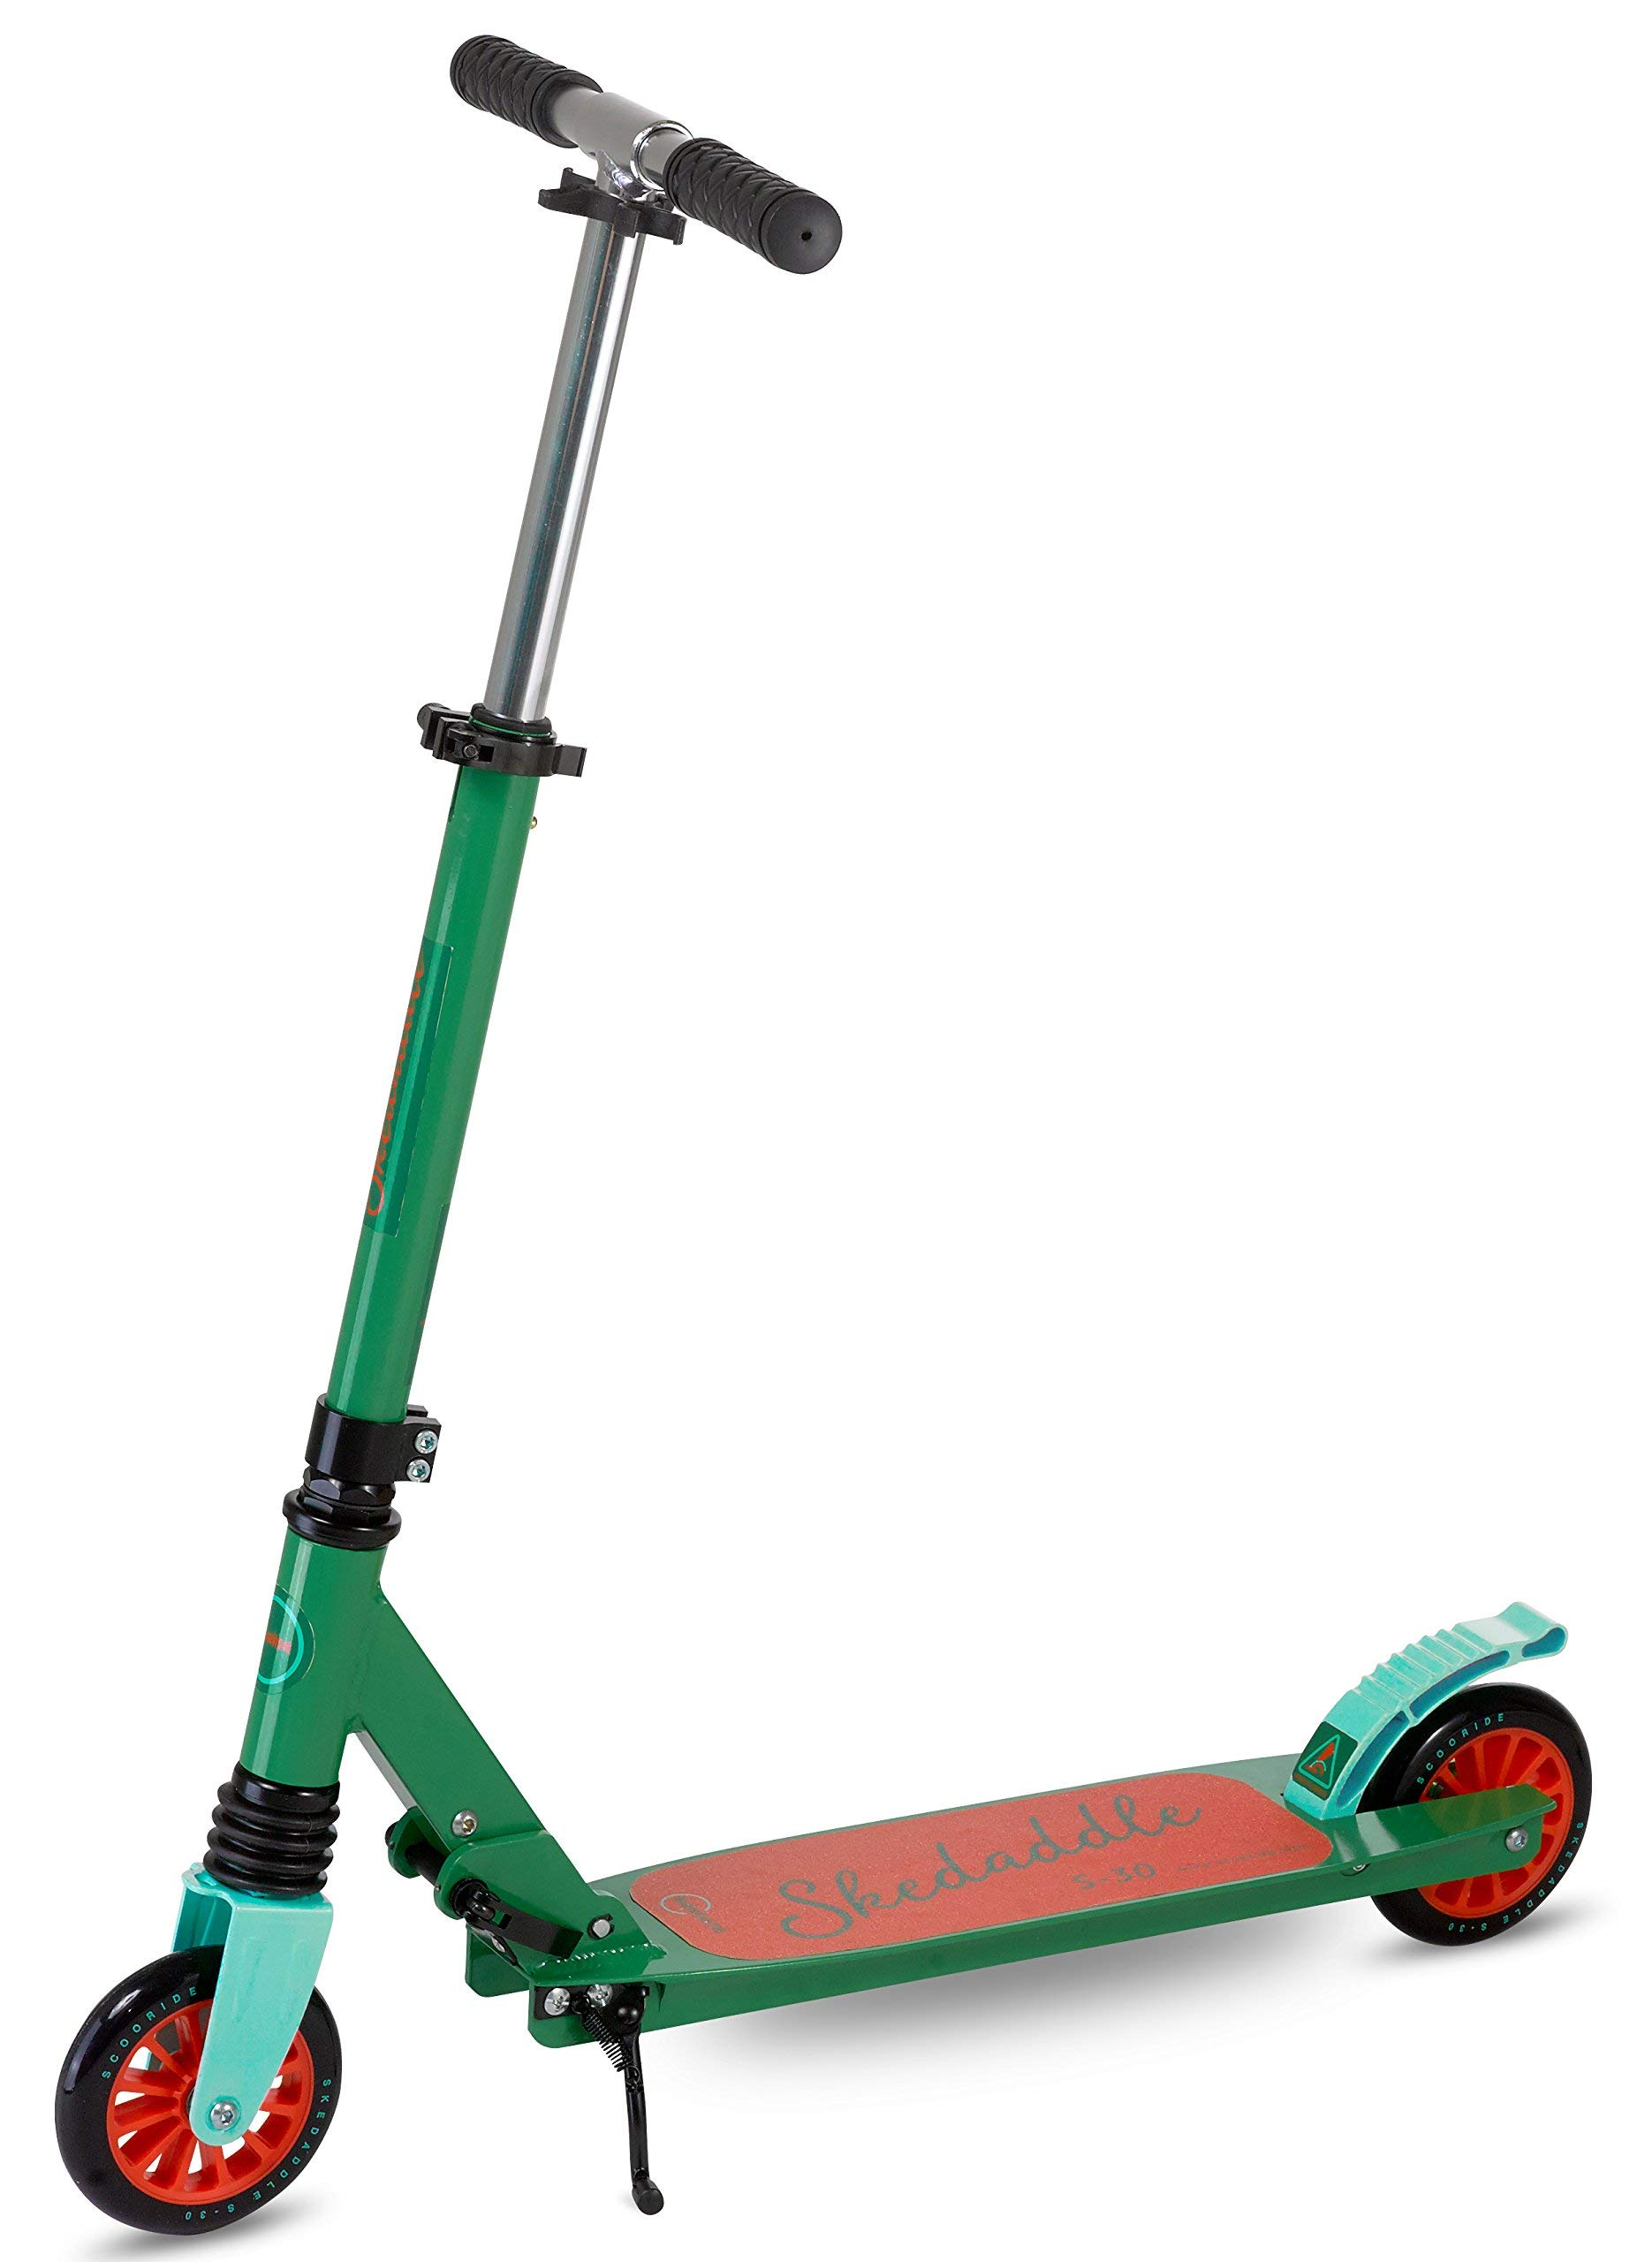 Scooter for Kids | 2 Wheel Scooter for Boys | Two Wheel Scooter for Girls | Outdoor King Kids Scooters | Folding Kids Scooter Easy to Transport | Scooride Skeddadle (Green)